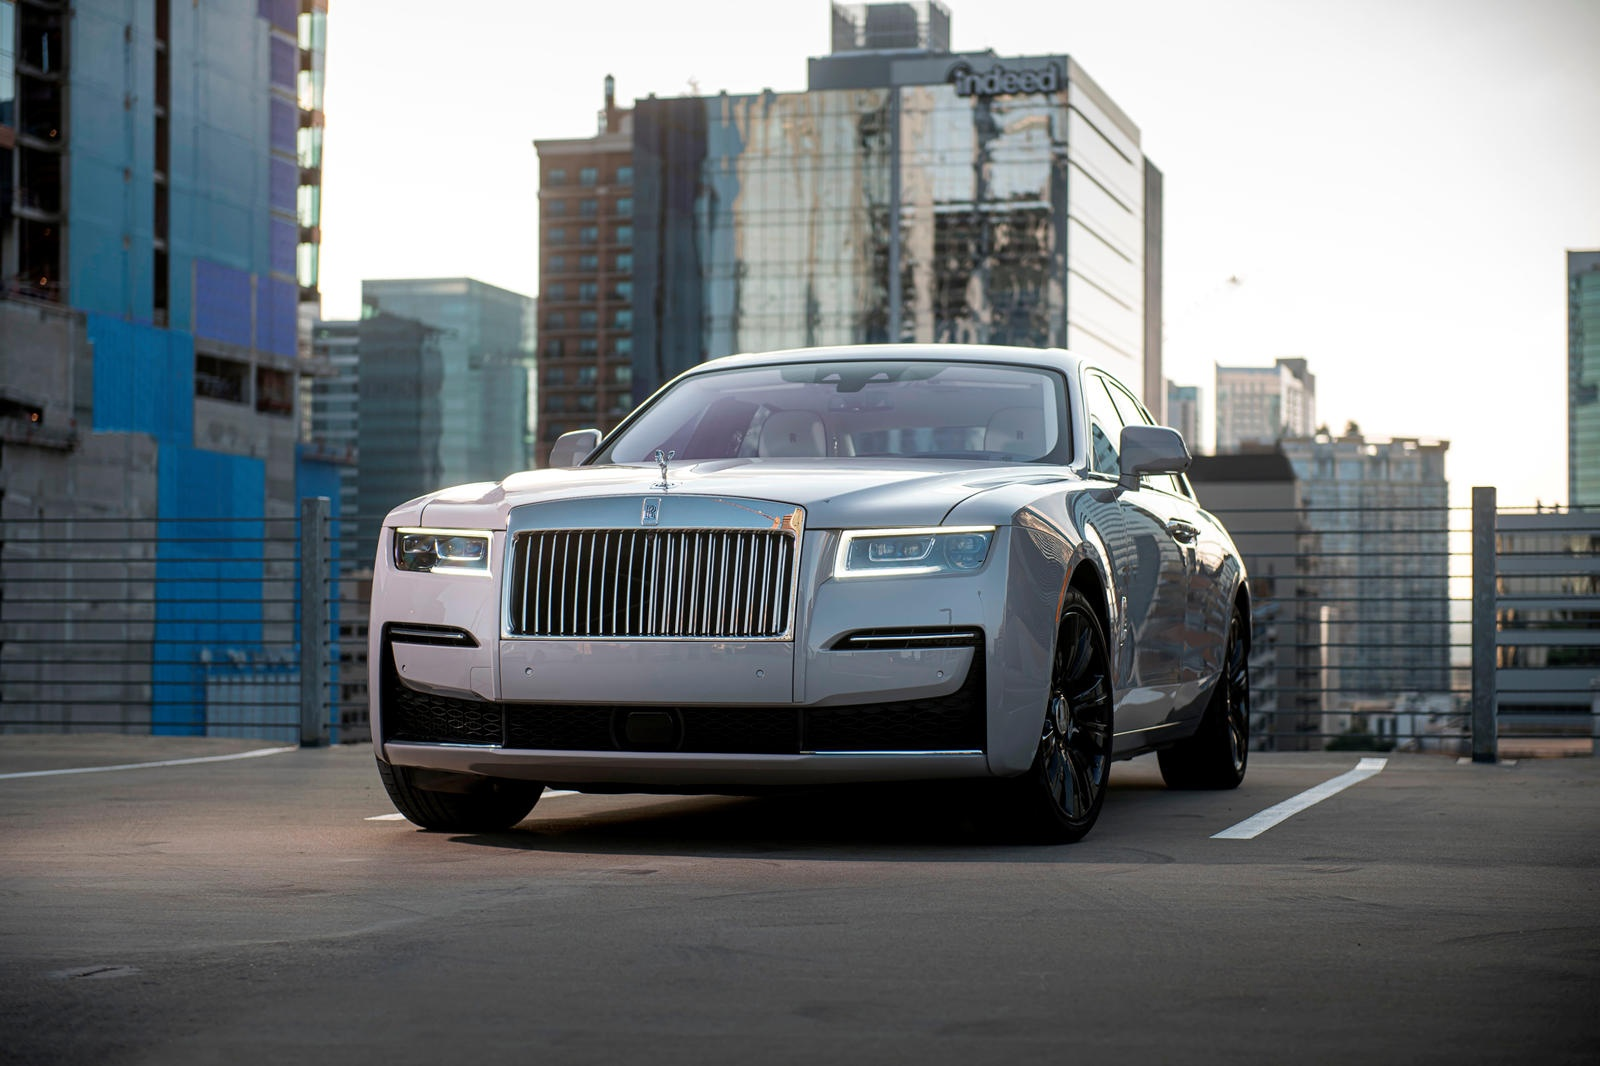 Danh gia Rolls-Royce Ghost 2021 anh 5